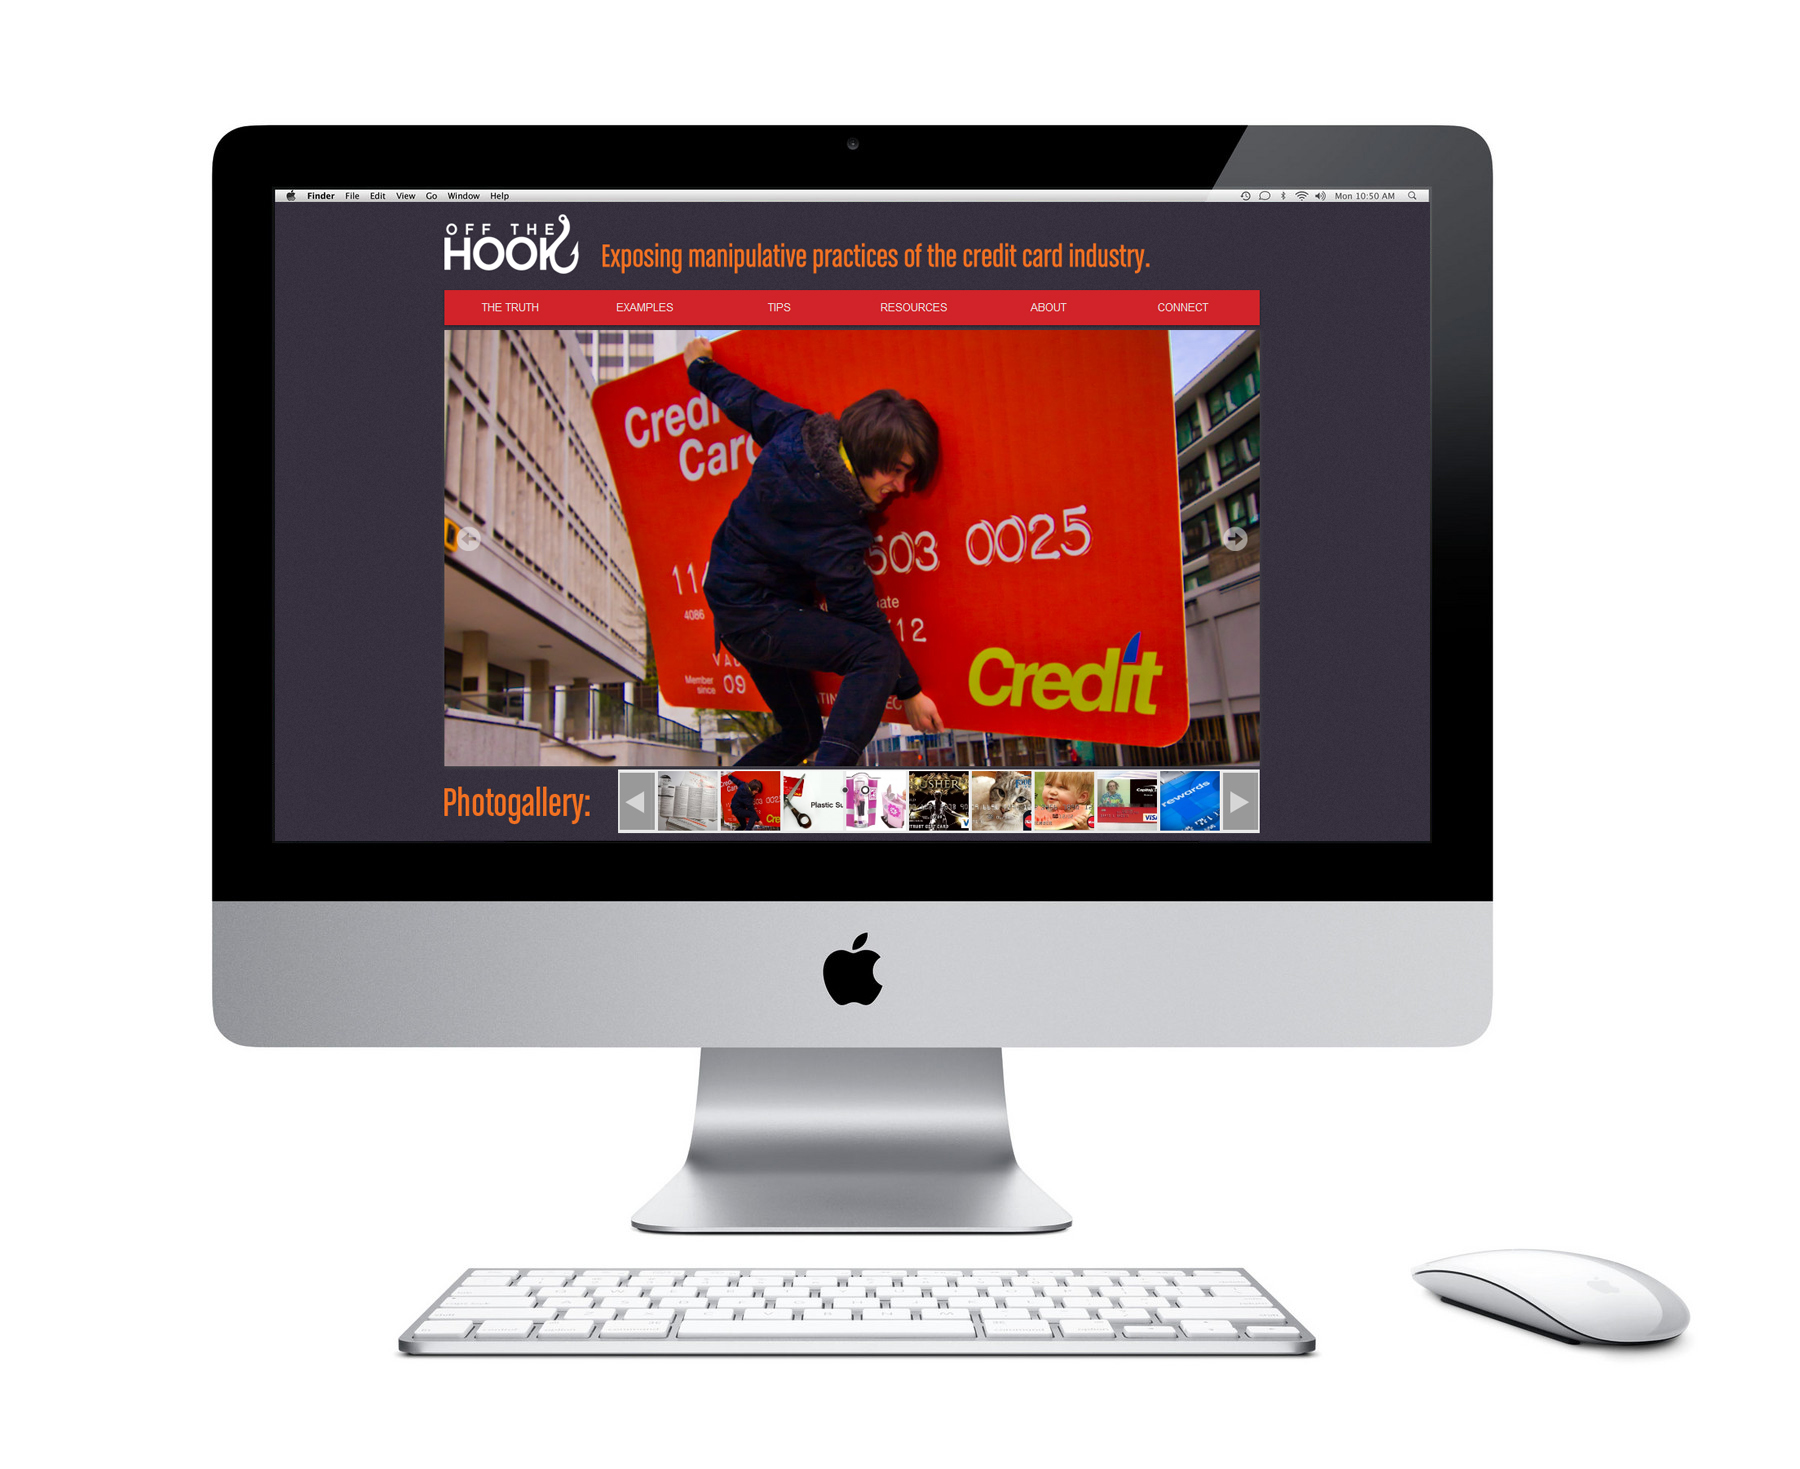 Get Off The Hook website design by Vadimages